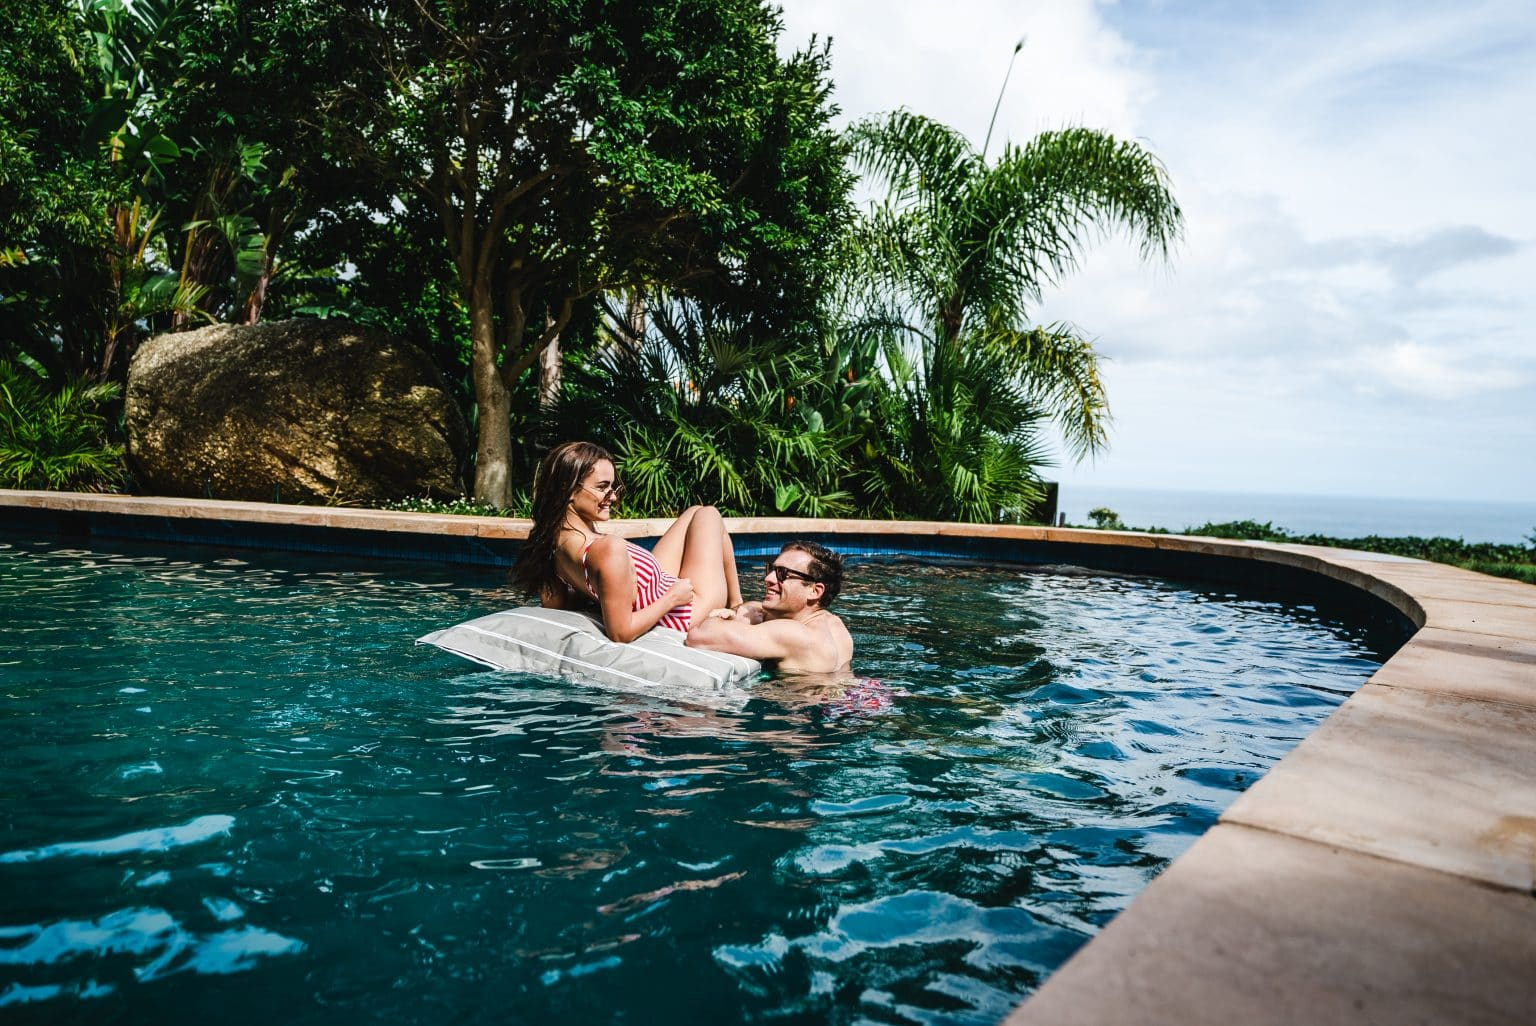 A couple enjoys the pool at 21 Nettleton